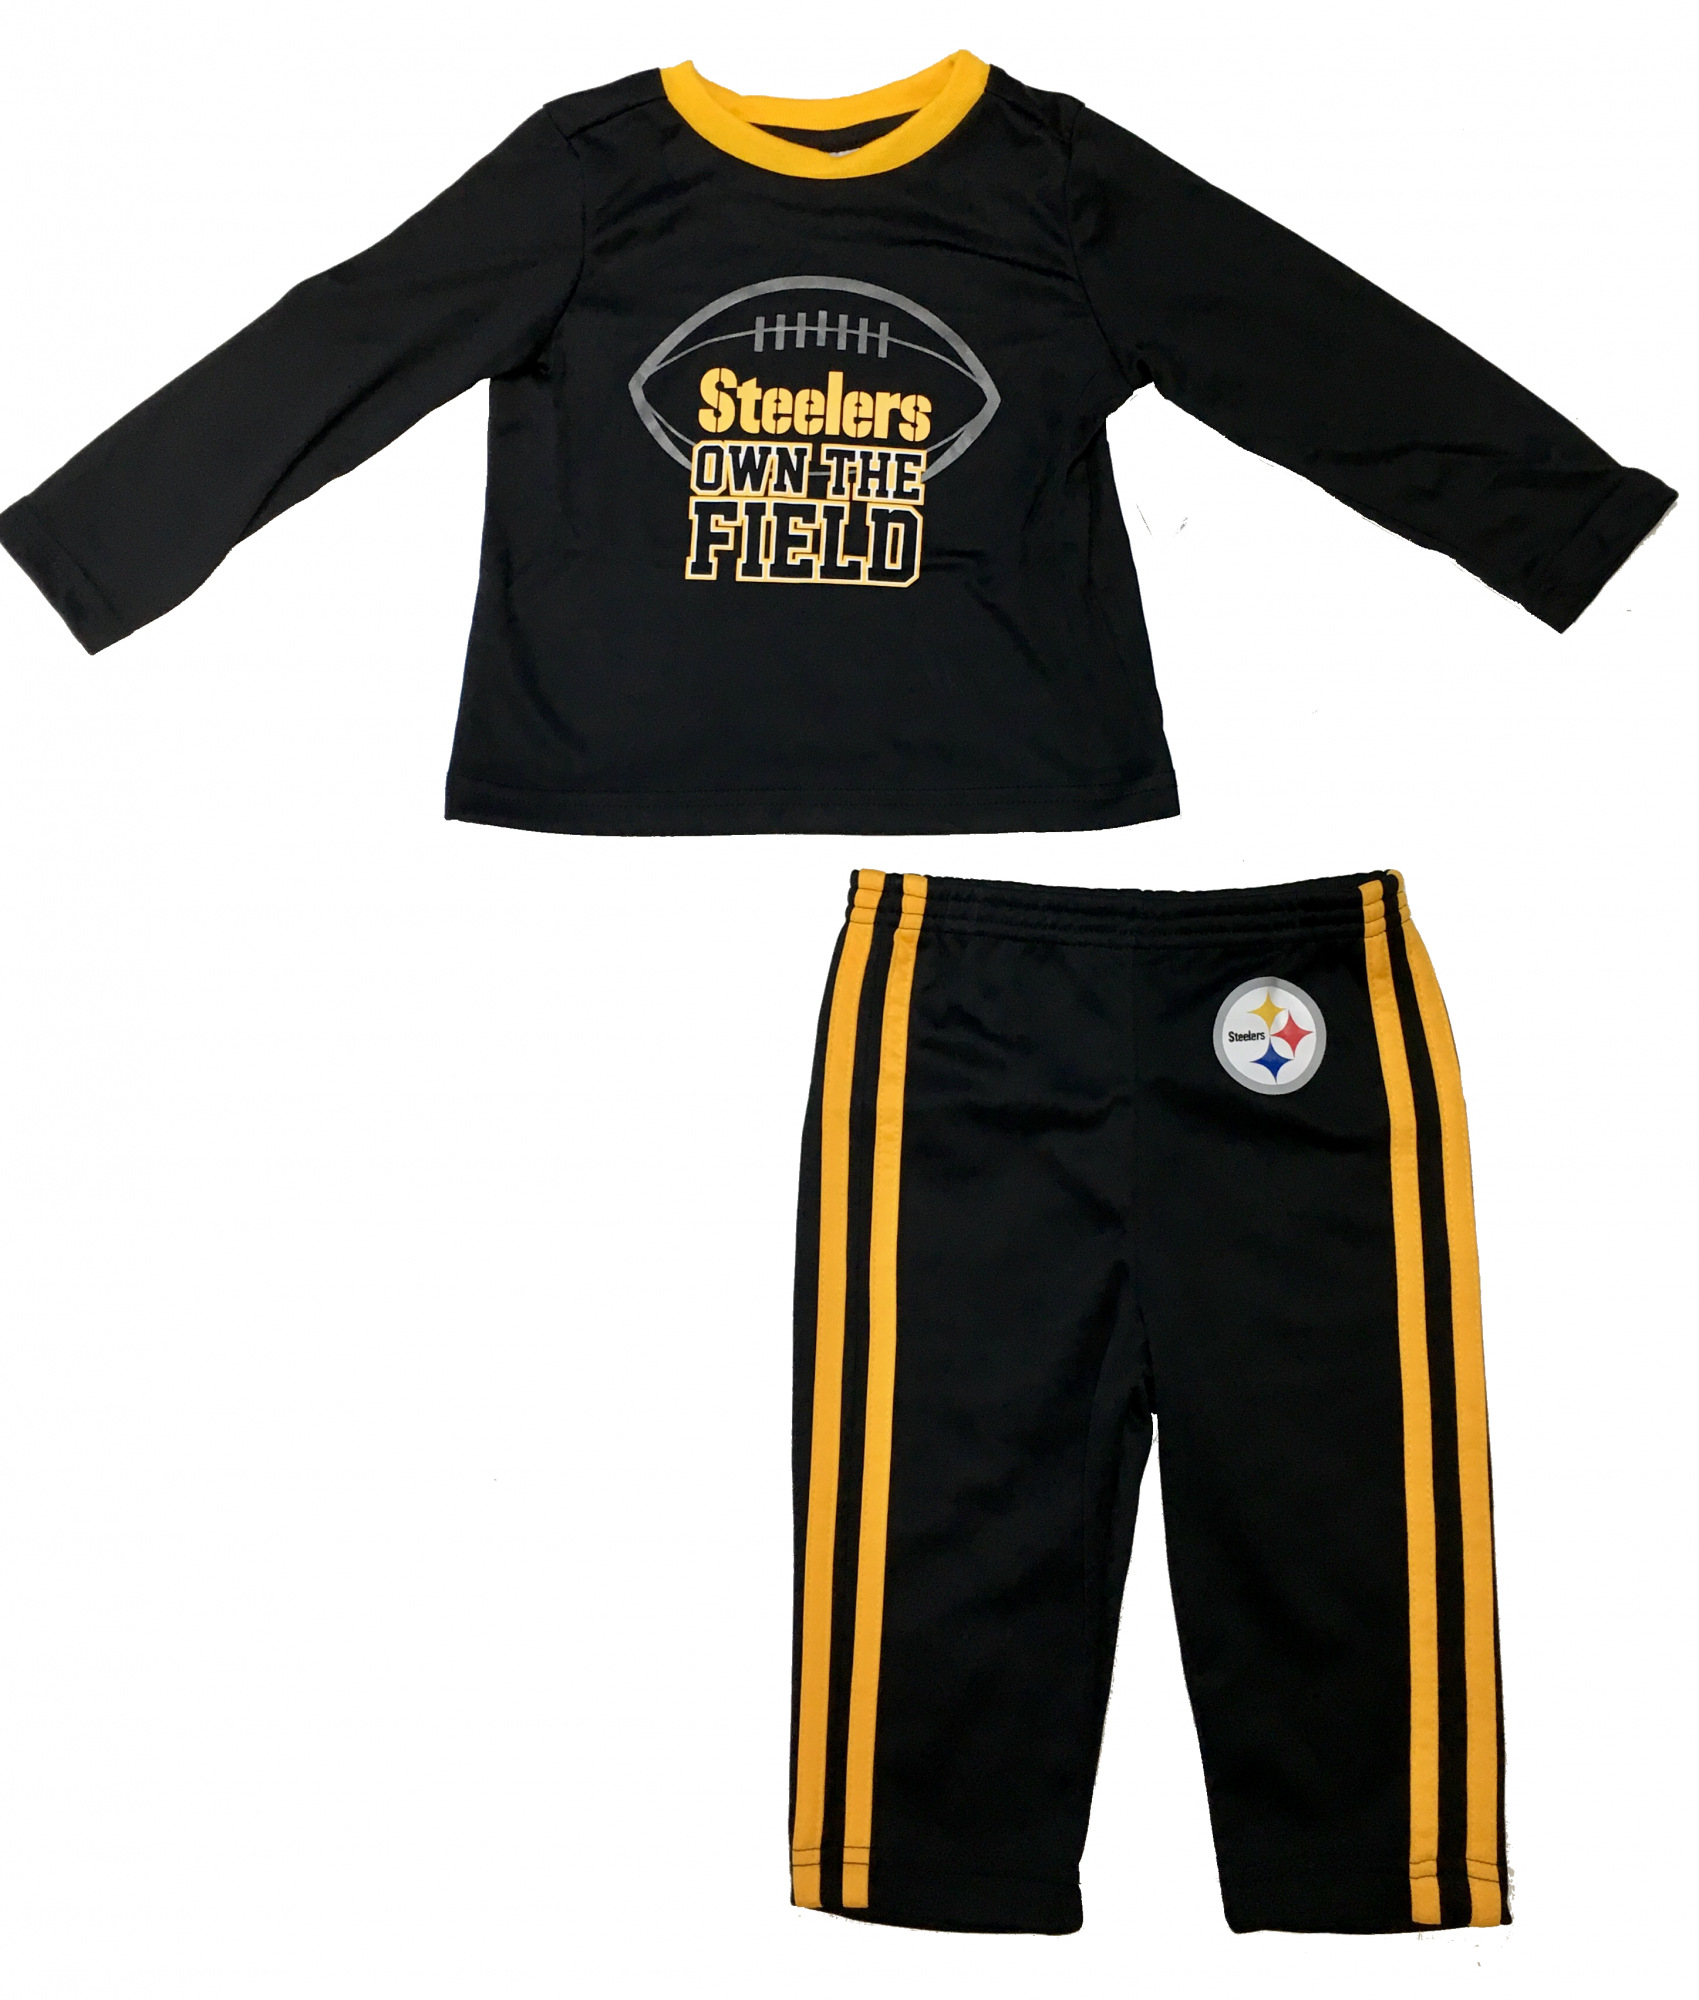 NFL-Steelers-childrens-performance-tee-and-track-pants-2.PNG